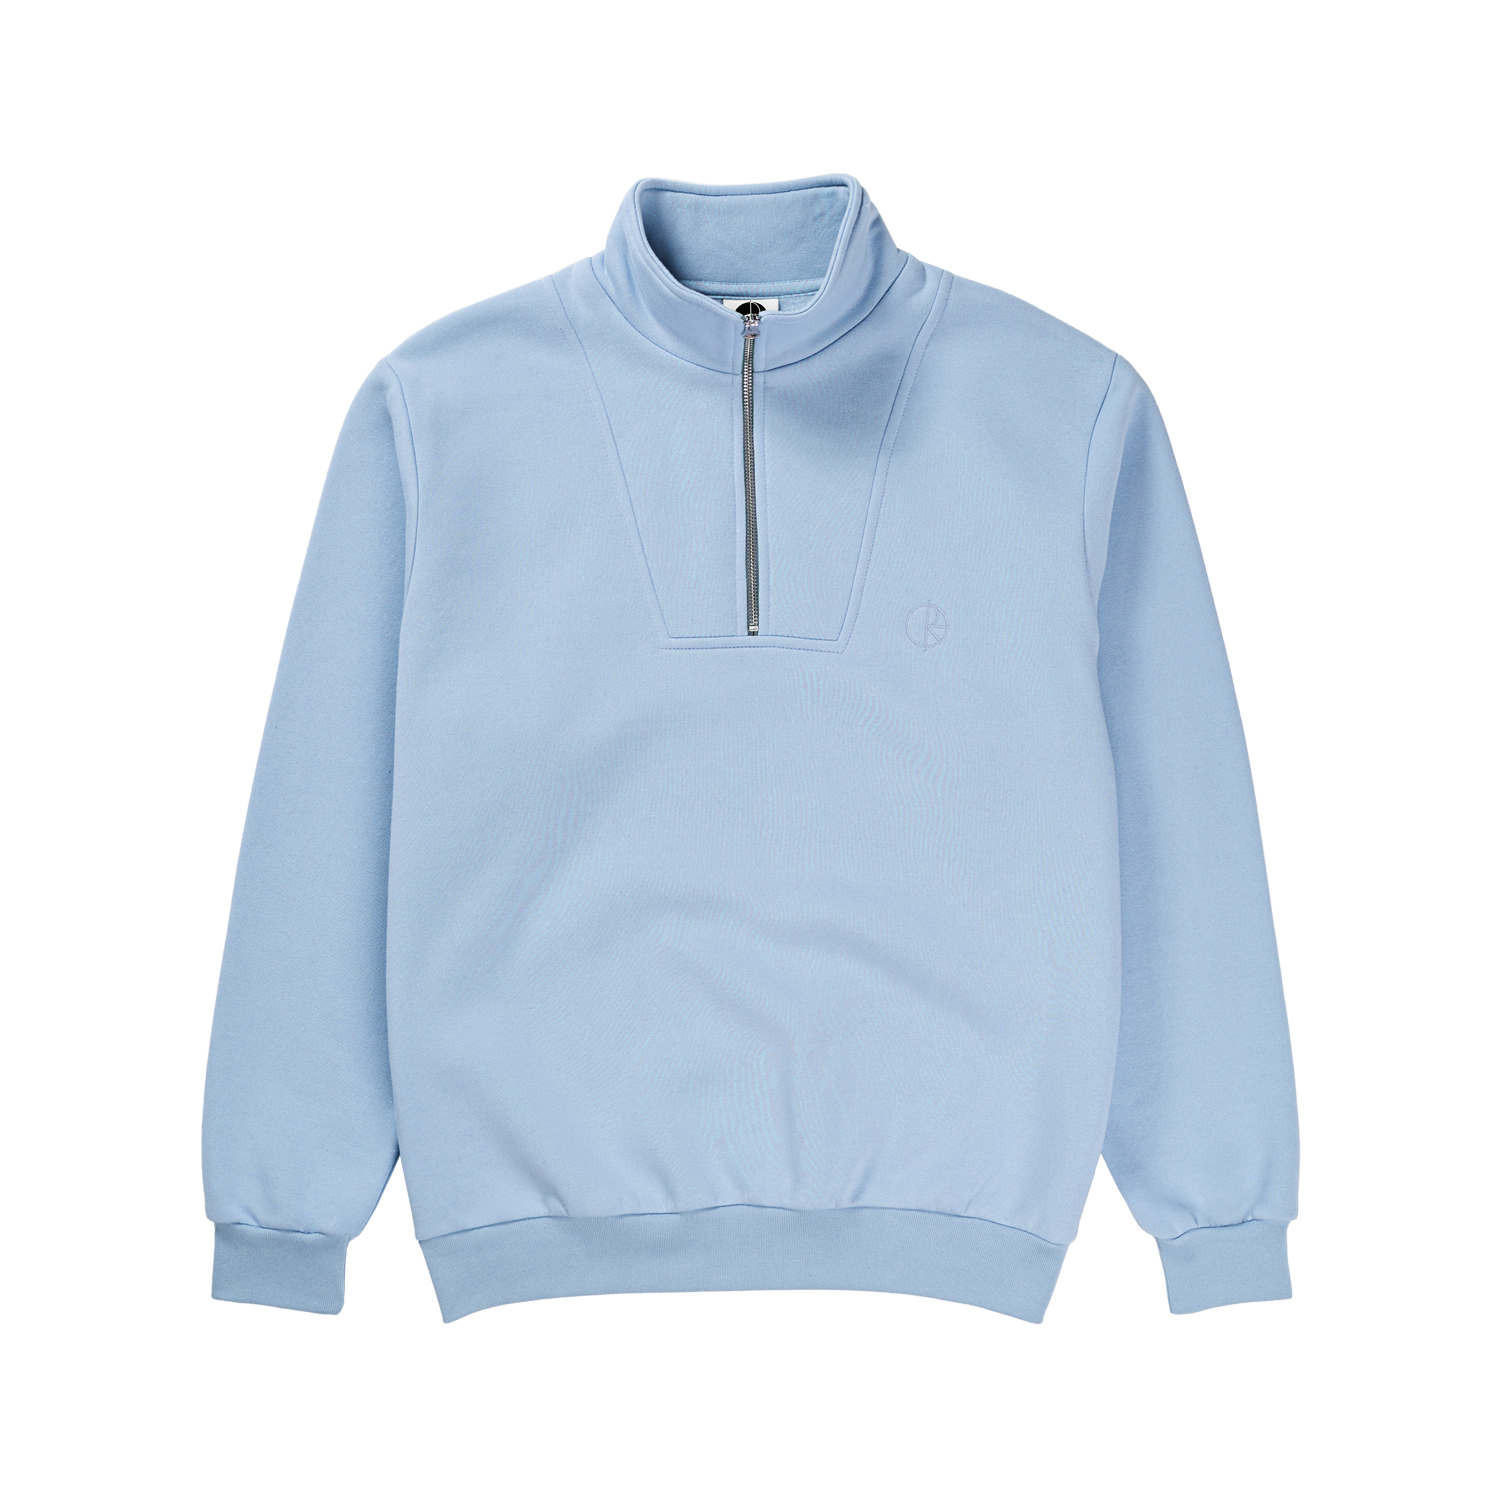 Polar Zip Neck Sweatshirt Powder Blue